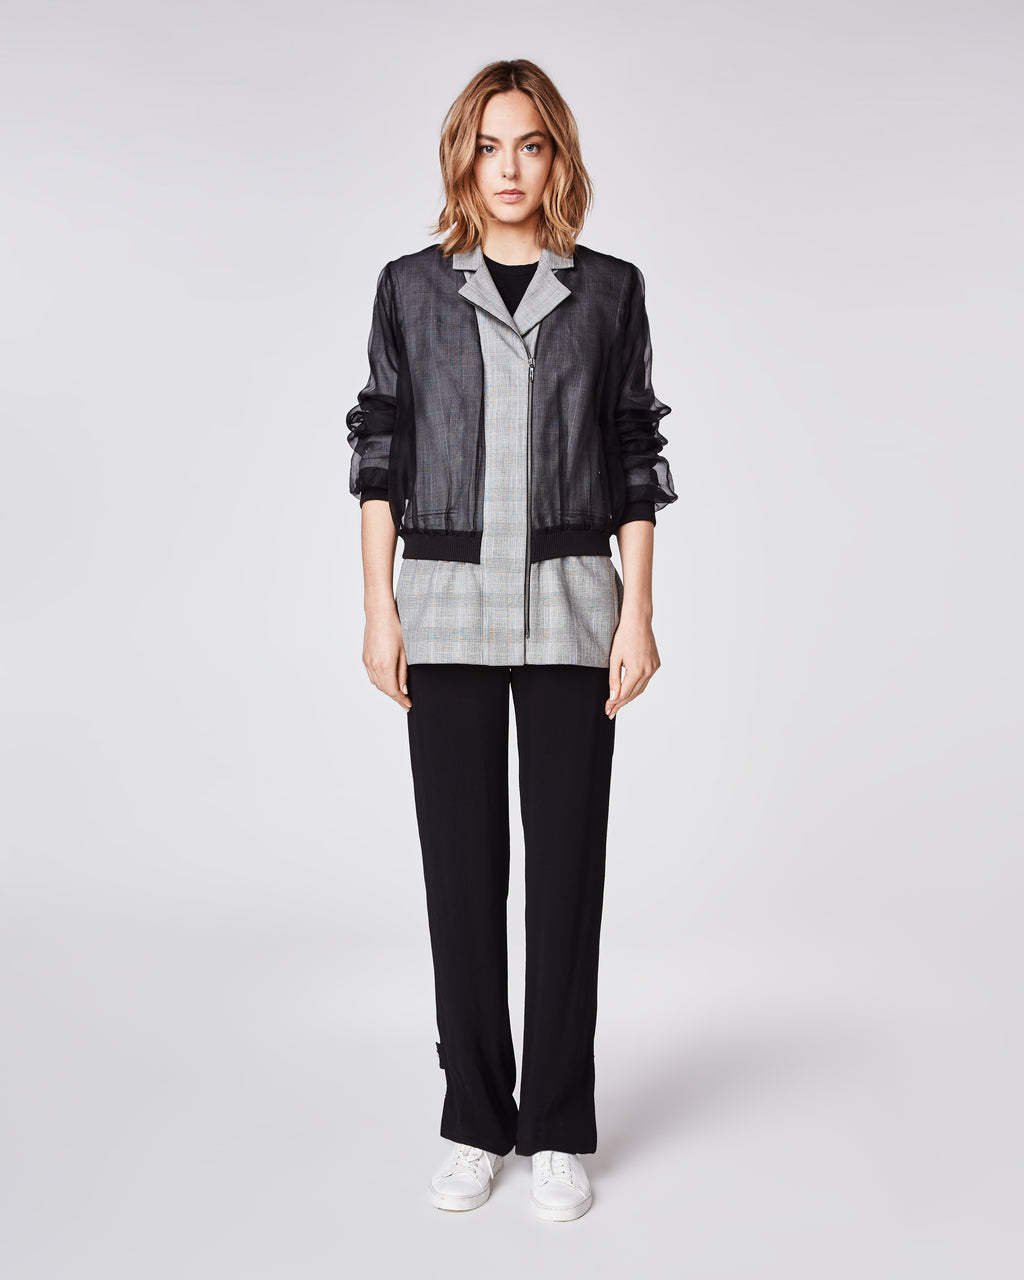 CO10117 - GLEN PLAID COMBO ZIP FRONT JACKET - outerwear - jackets - HOW TO WEAR ORGANZA. THIS PLAID, LAYERED JACKET FEATURES RIBBED CUFFS AND A SUBTLE SHOULDER PAD. ASYMMETRICAL ZIPPER, FULLY LINED. Final Sale